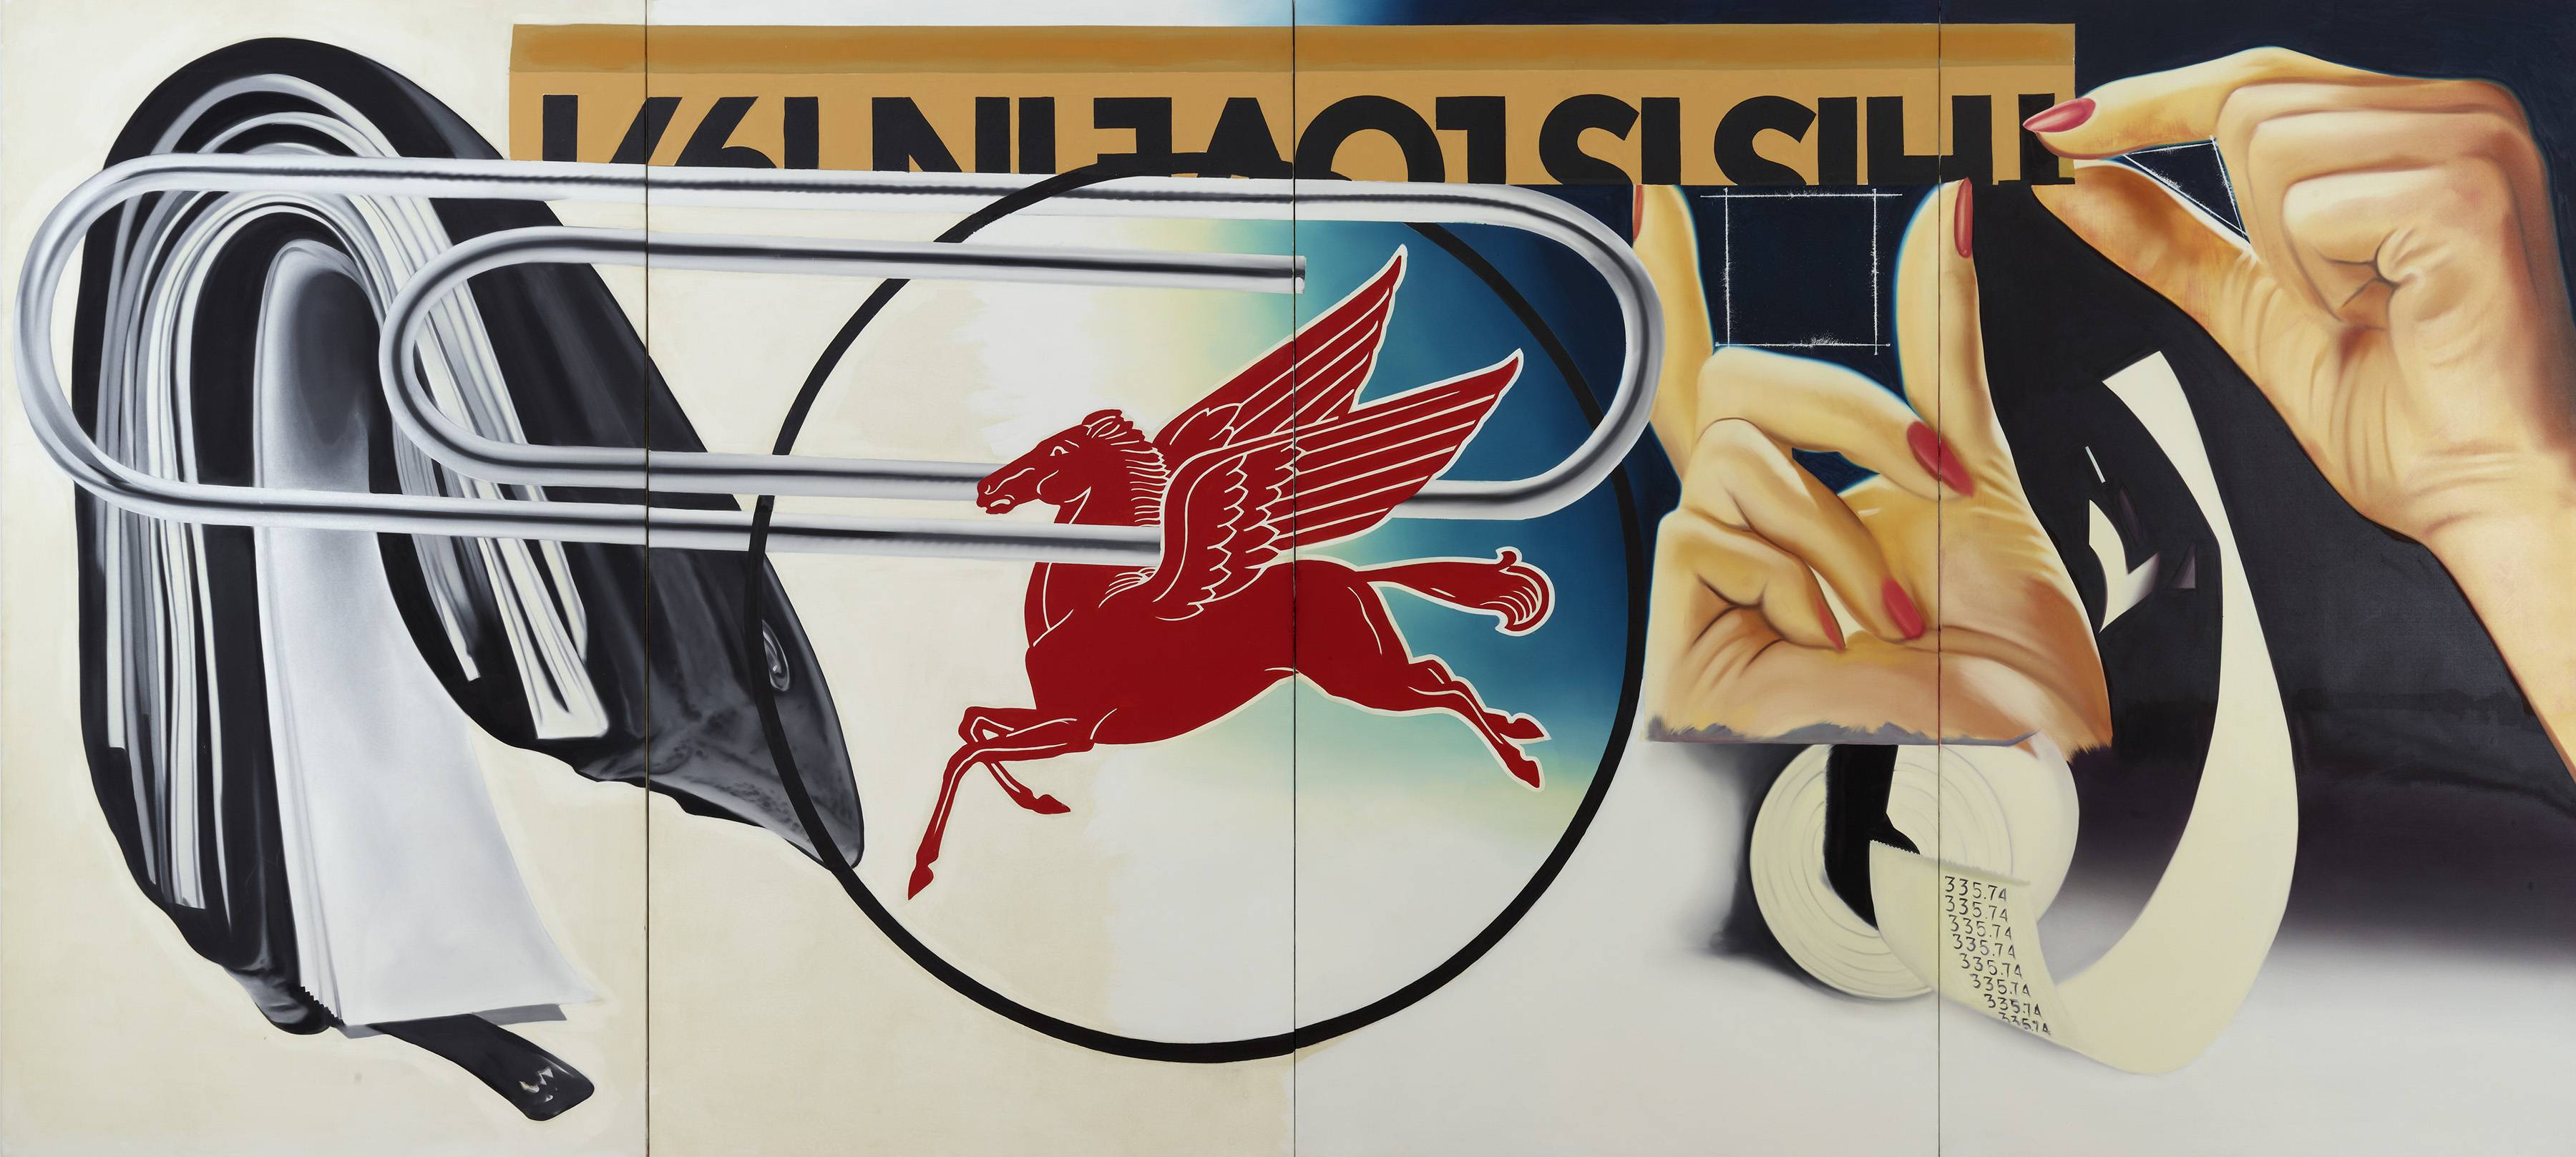 "This image provided by the Dallas Museum of Art shows James Rosenquist's 1973 work titled ""Paper Clip."" AP Photo/Dallas Museum of Art"